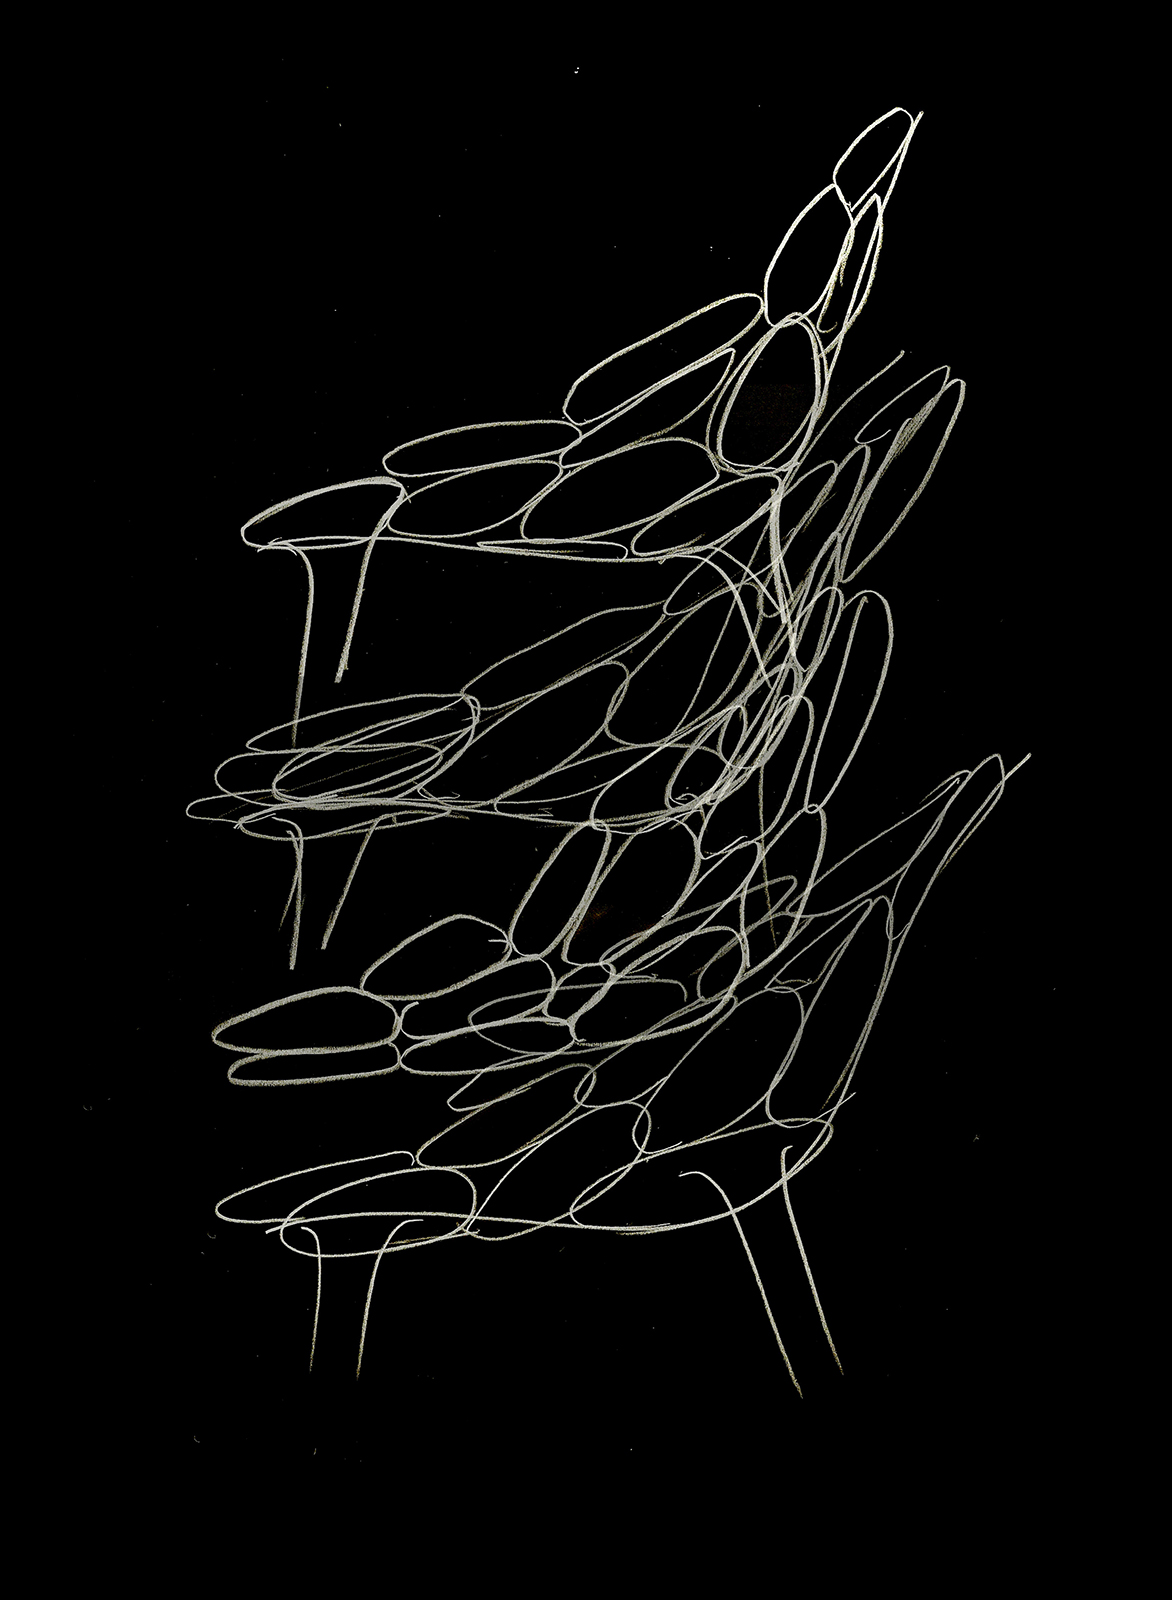 Claud-io chair by eugeni Quitllet with Kartell  sketch 2